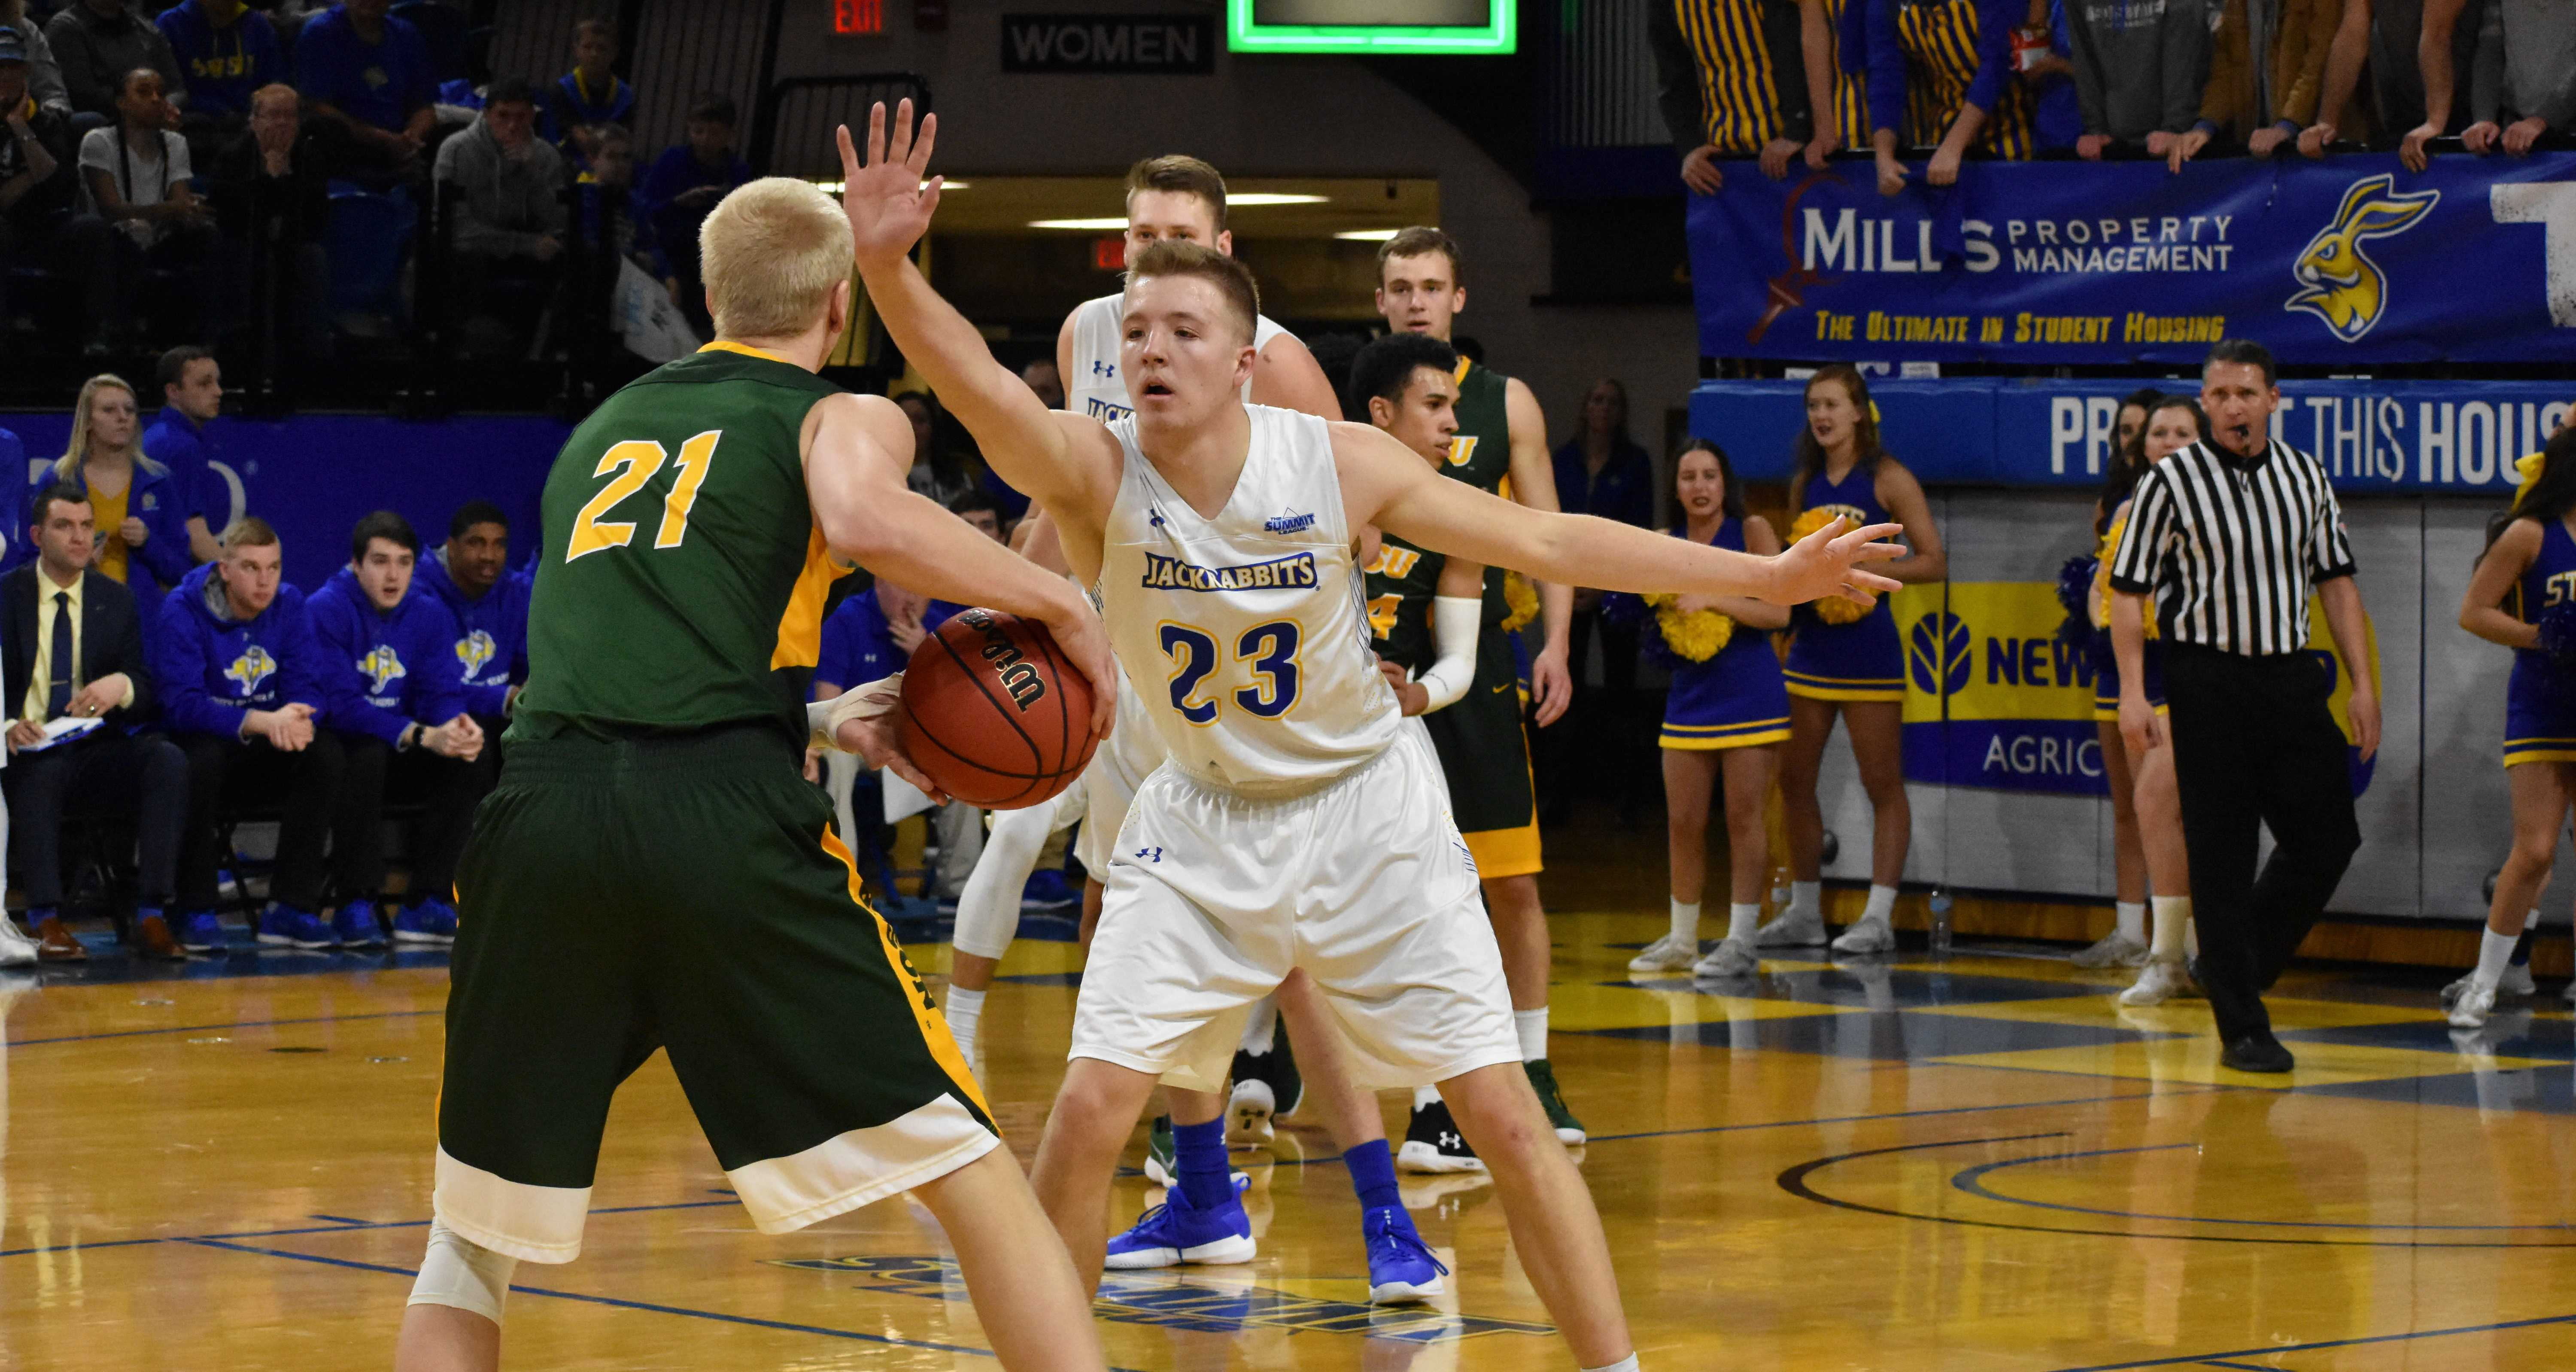 ABBY FULLENKAMP Senior forward guard Reed Tellinghuisen (23) blocks NDSU forward guard A.J. Jacobson (21) during the first half of the game Feb. 1. The Jacks beat the Bison 82-63. They host Western Illinois at 2pm Saturday, Feb. 17 in Frost Arena.